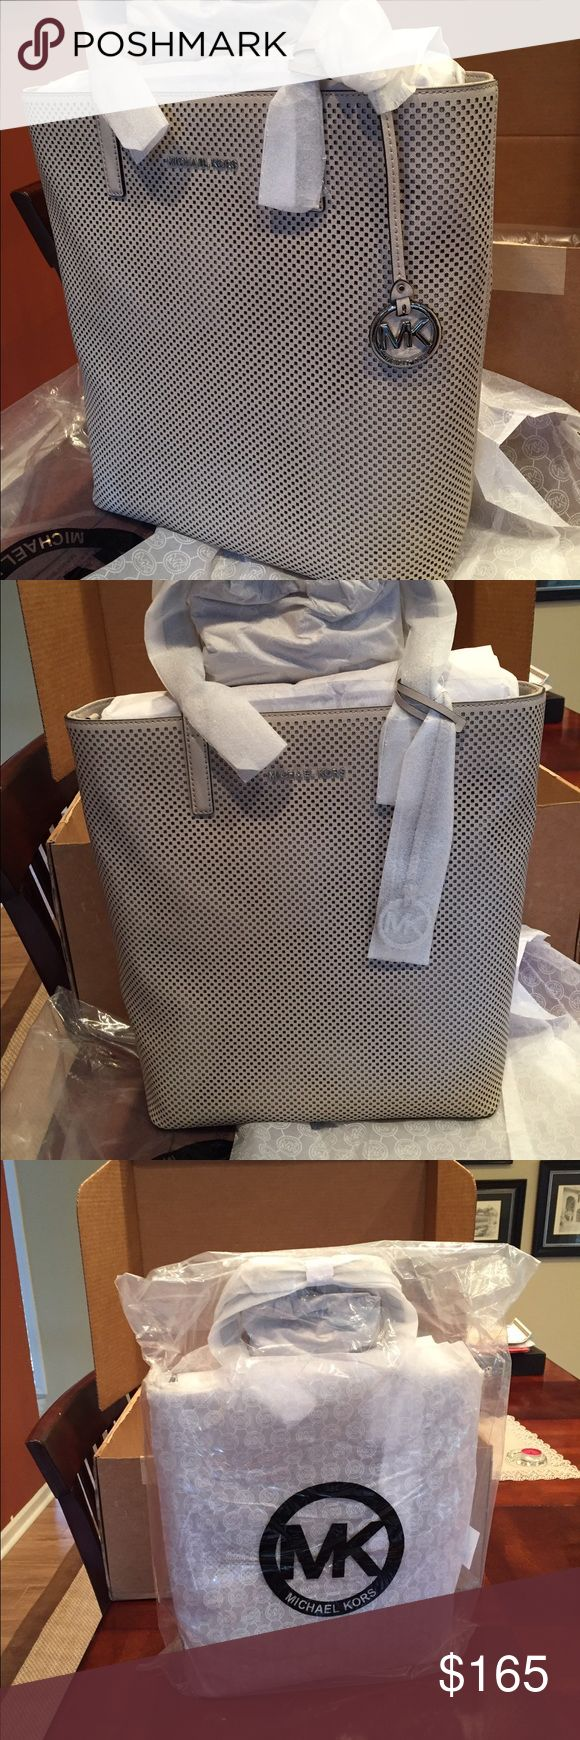 brand new still in box this large michael kors tote is still all wrapped up and